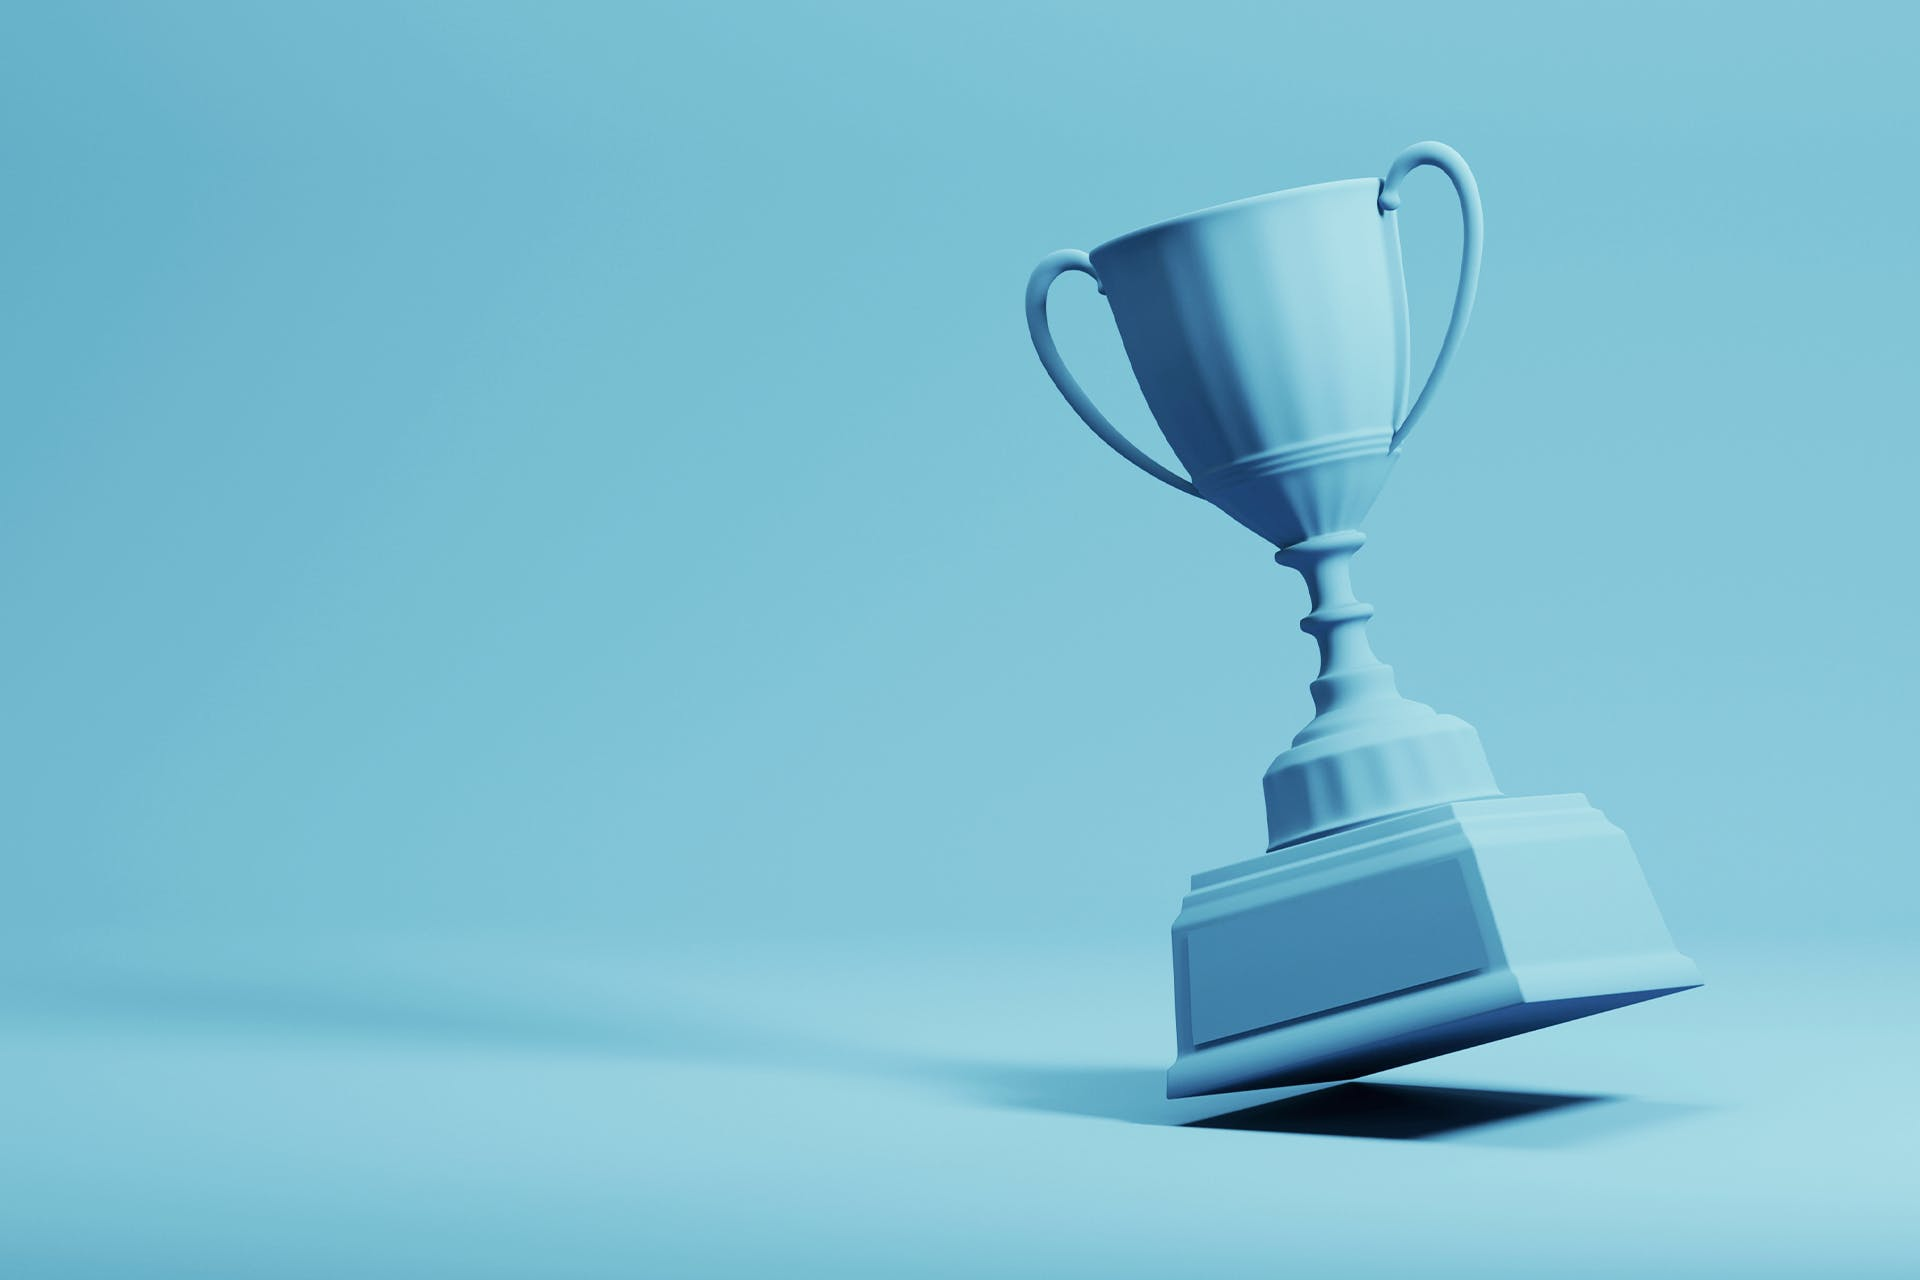 A blue trophy, like the one you might win if Facebook or Twitter gave out an award for the best social media marketing campaign, is set against a blue background.